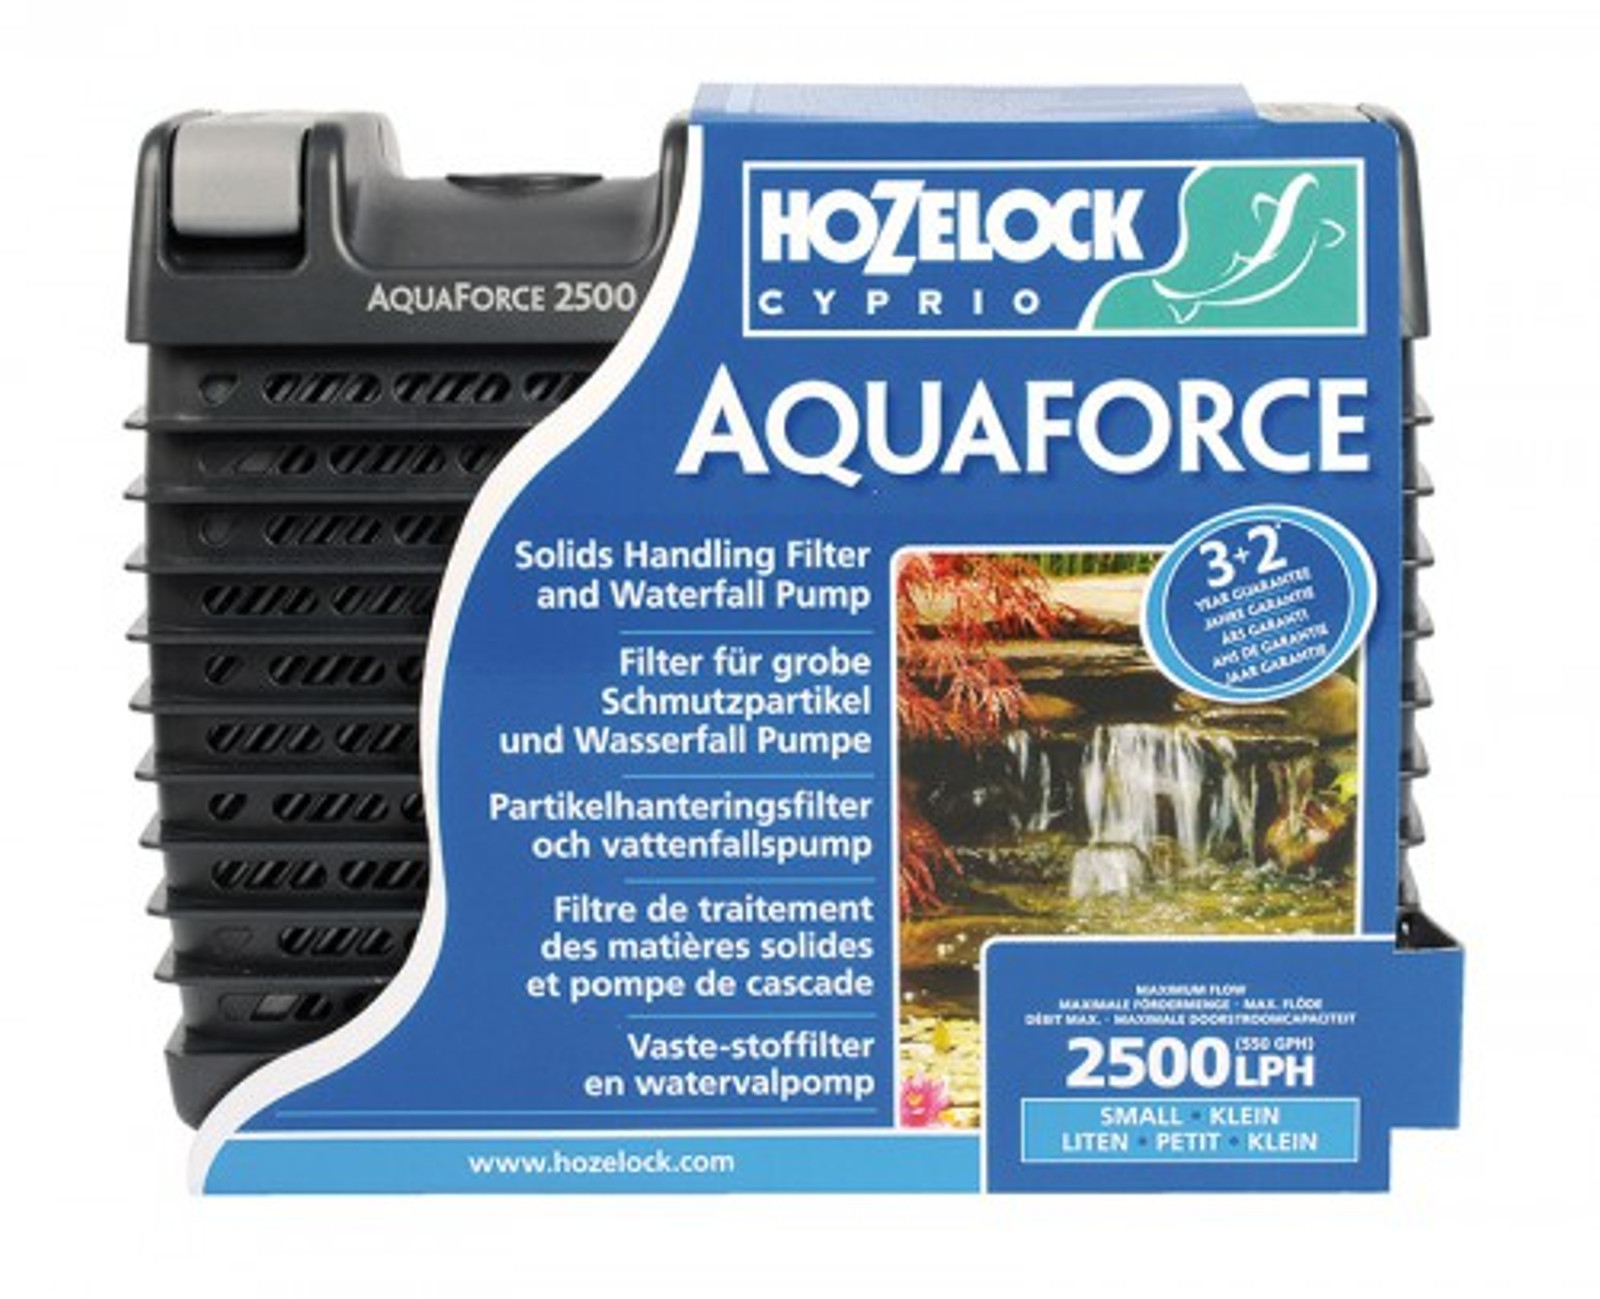 Aquaforce 15000 – Bild 2